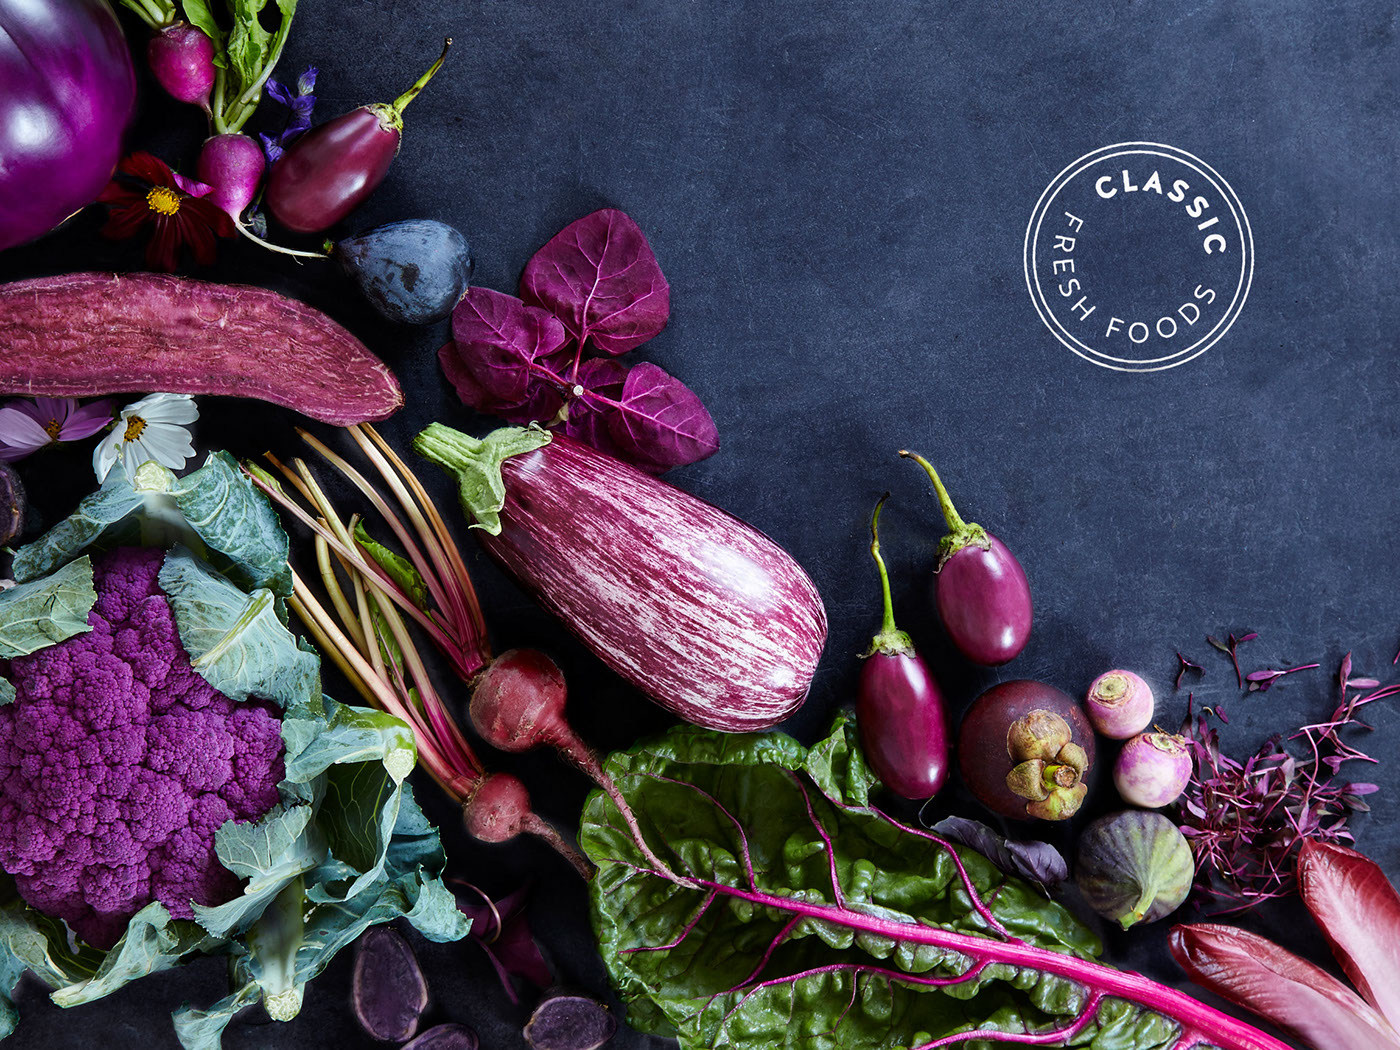 Classic Fresh Foods / фотограф Claire Hartley